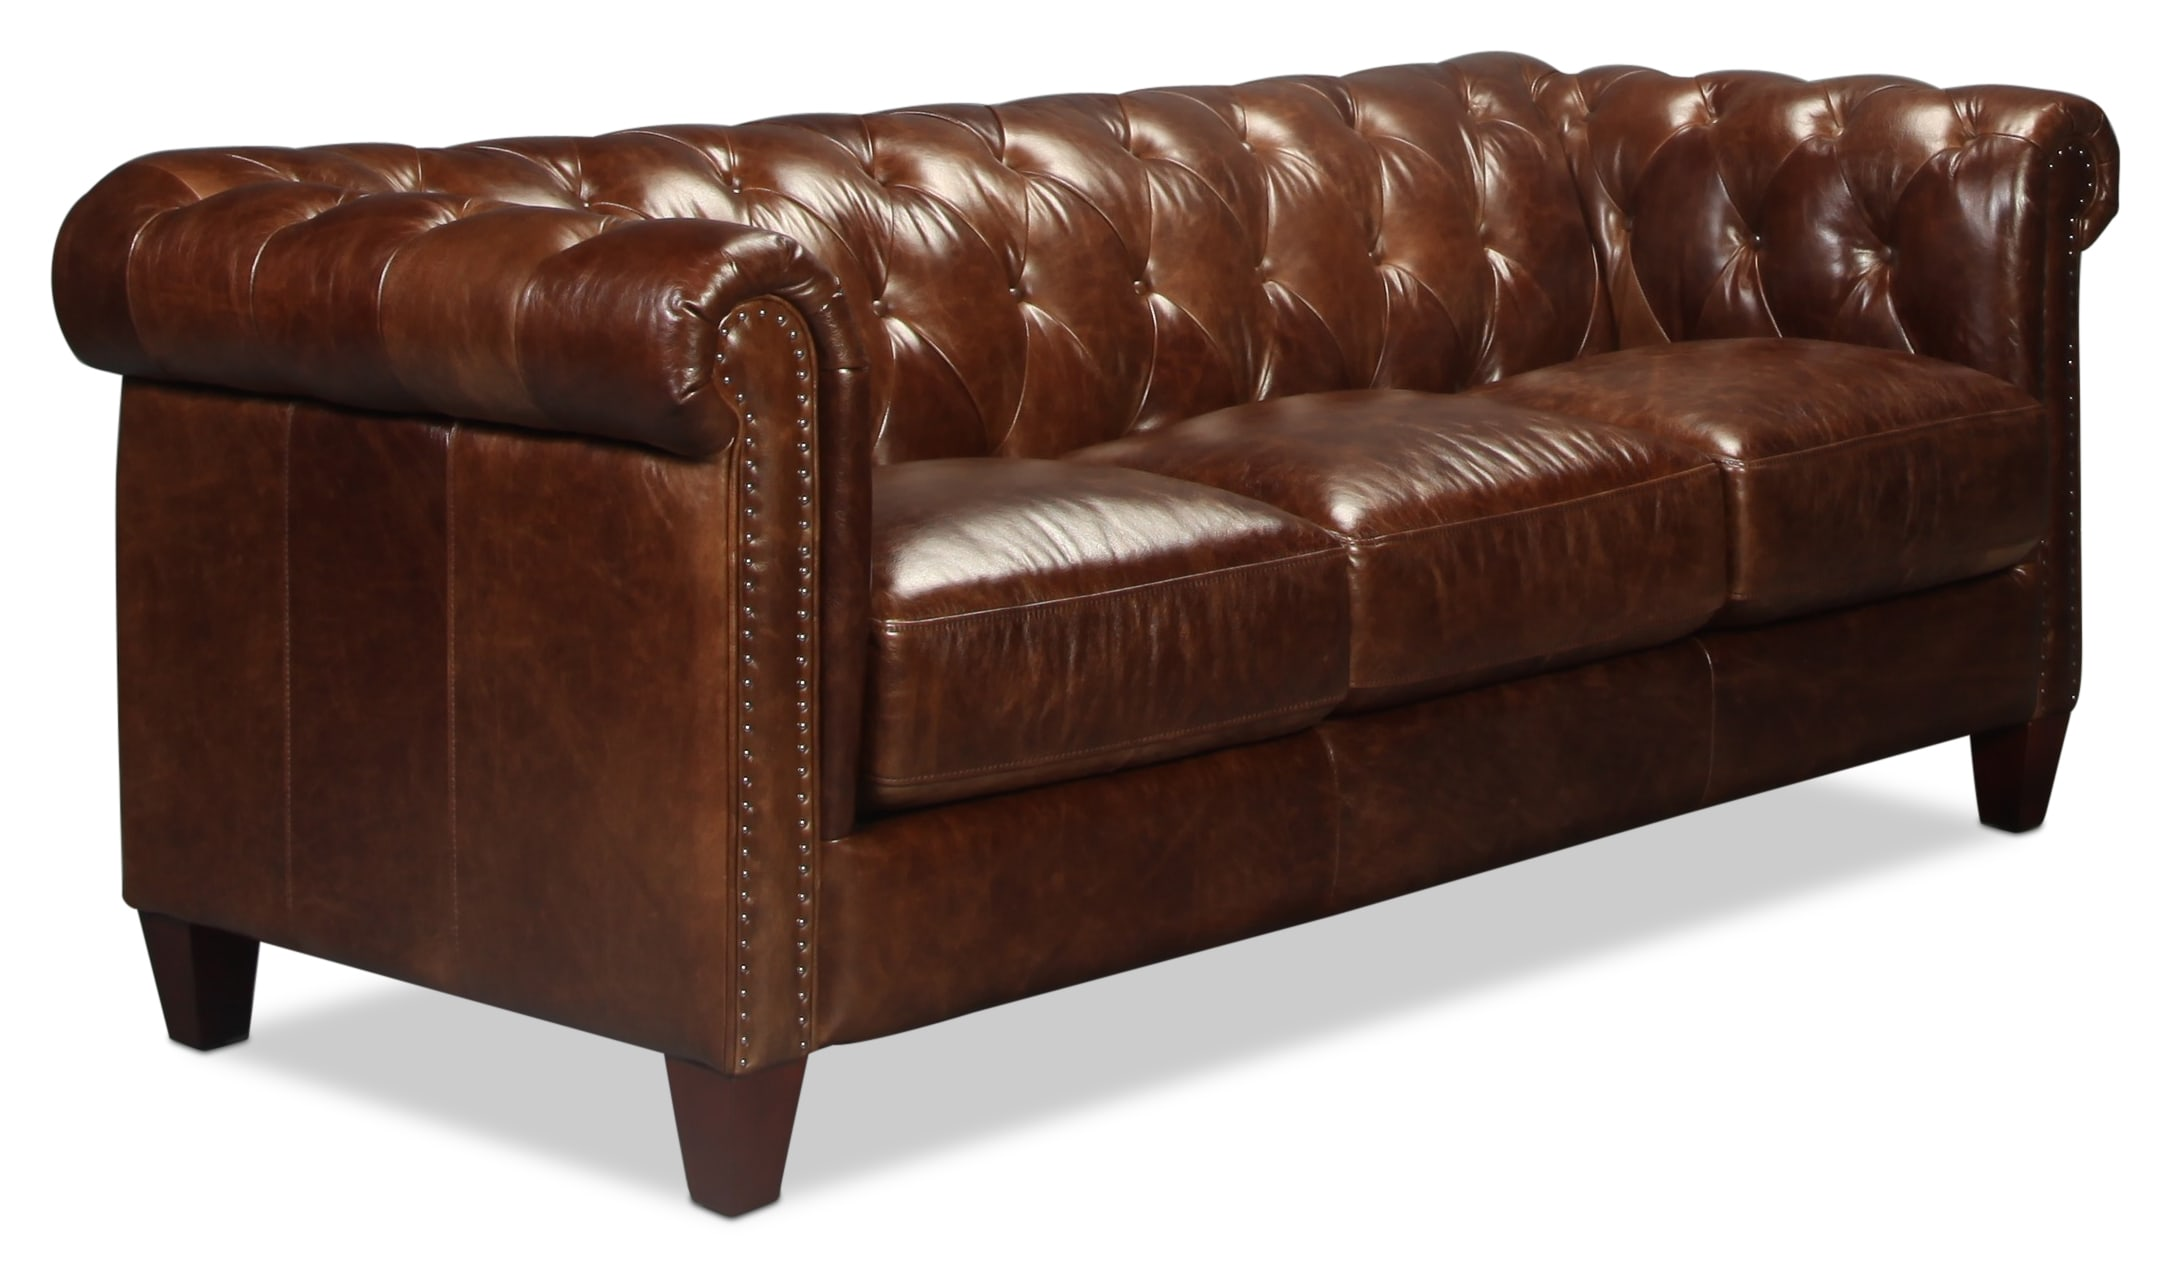 Levin Leather Sofas Rs Gold Sofa